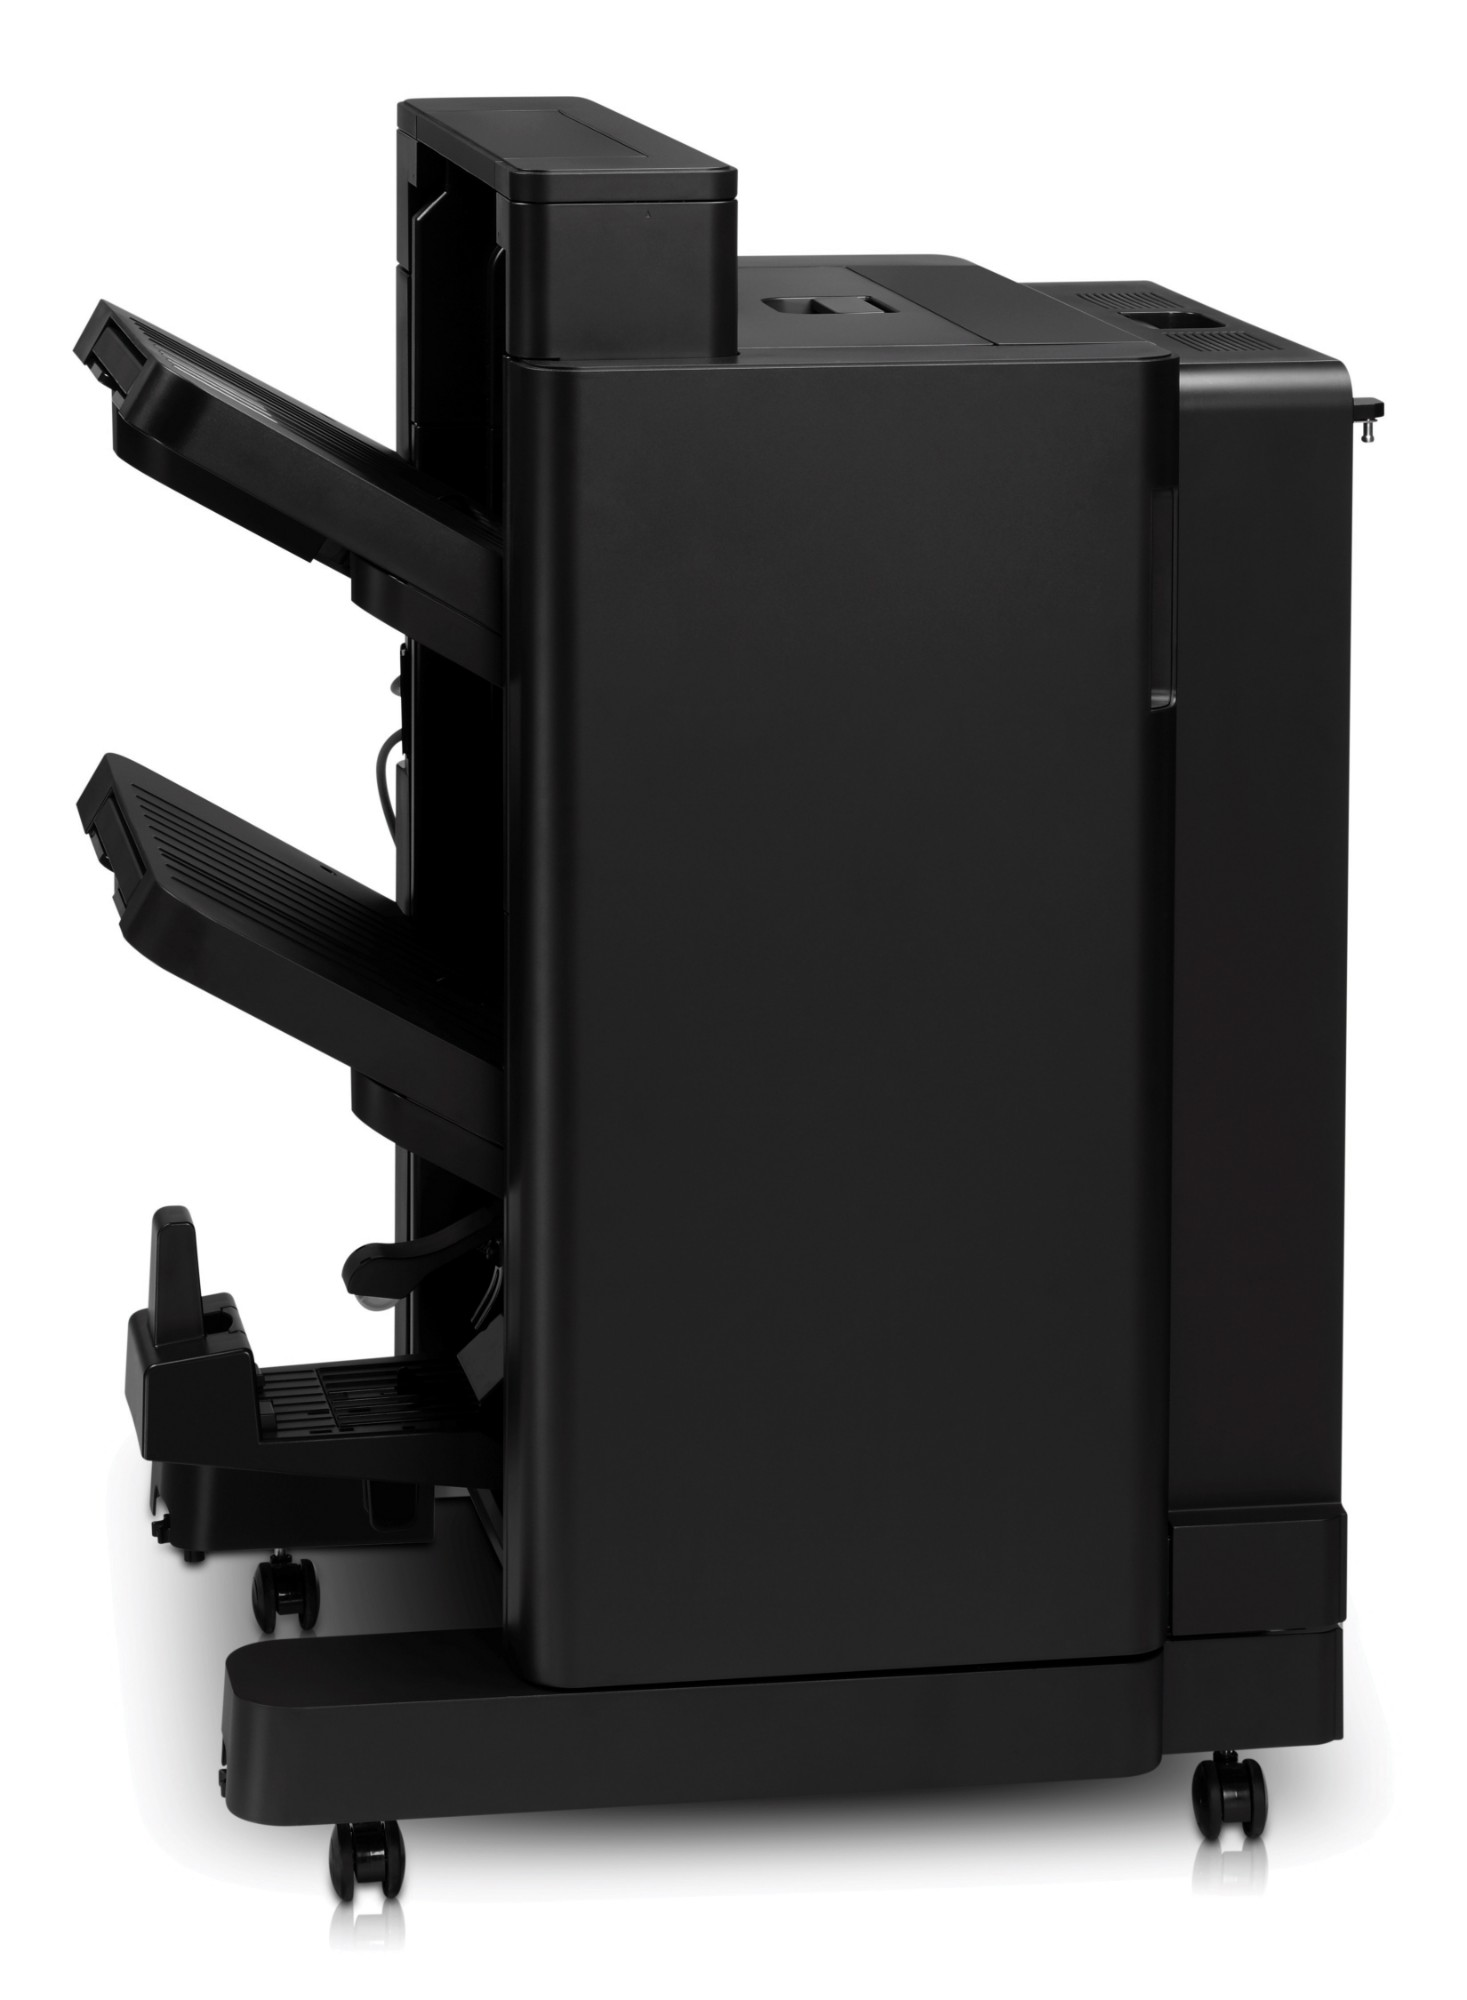 HP LaserJet Booklet Maker/Finisher